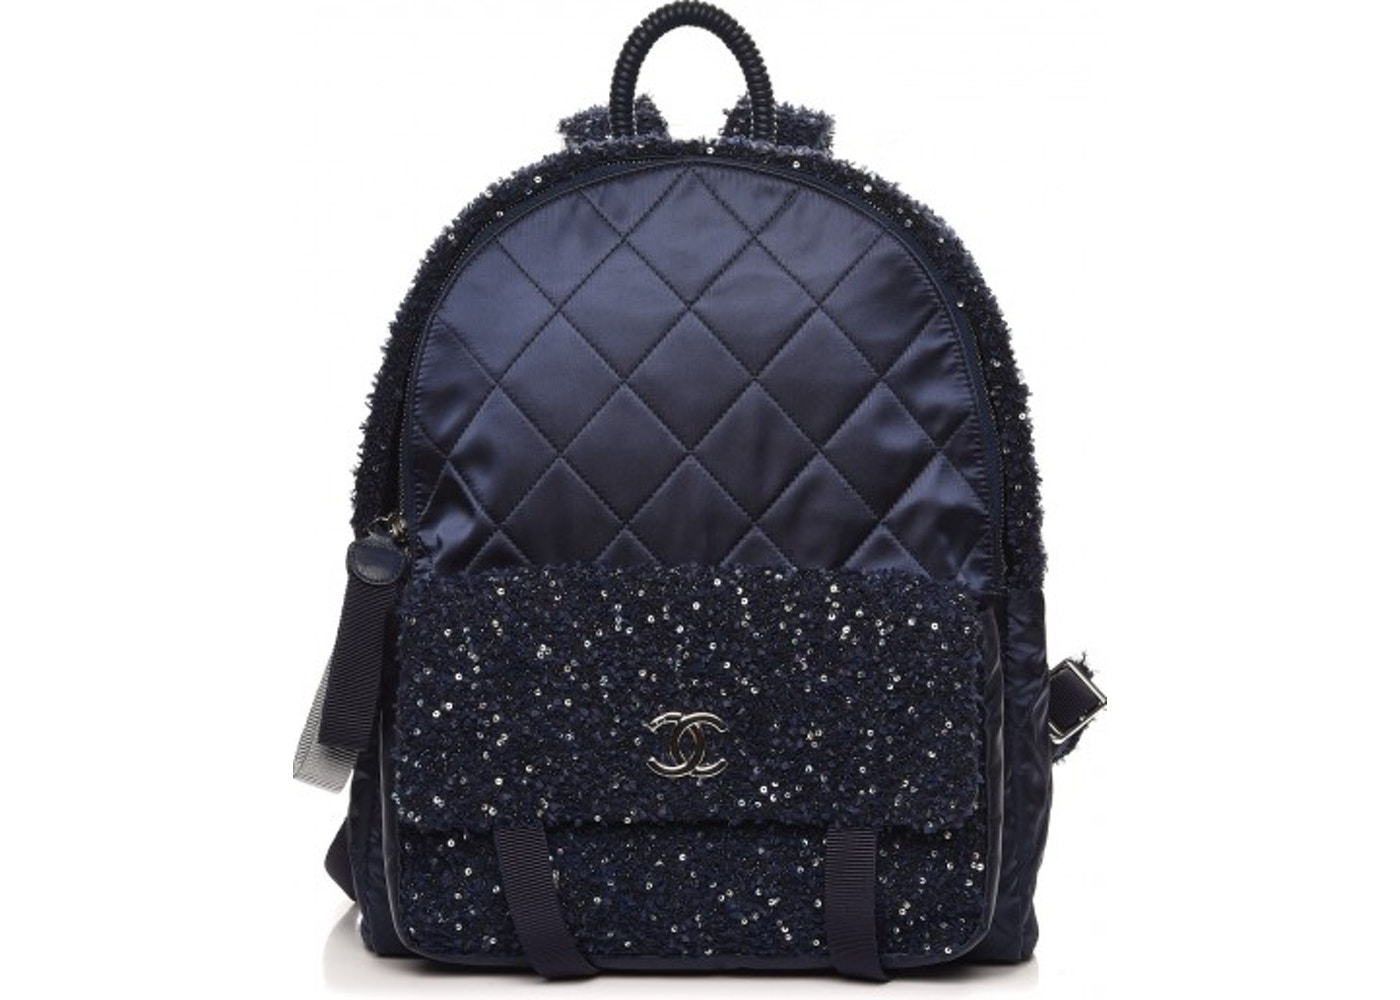 38a0ec15a7d1 Chanel Astronaut Essentials Backpack Quilted Diamond Iridescent ...